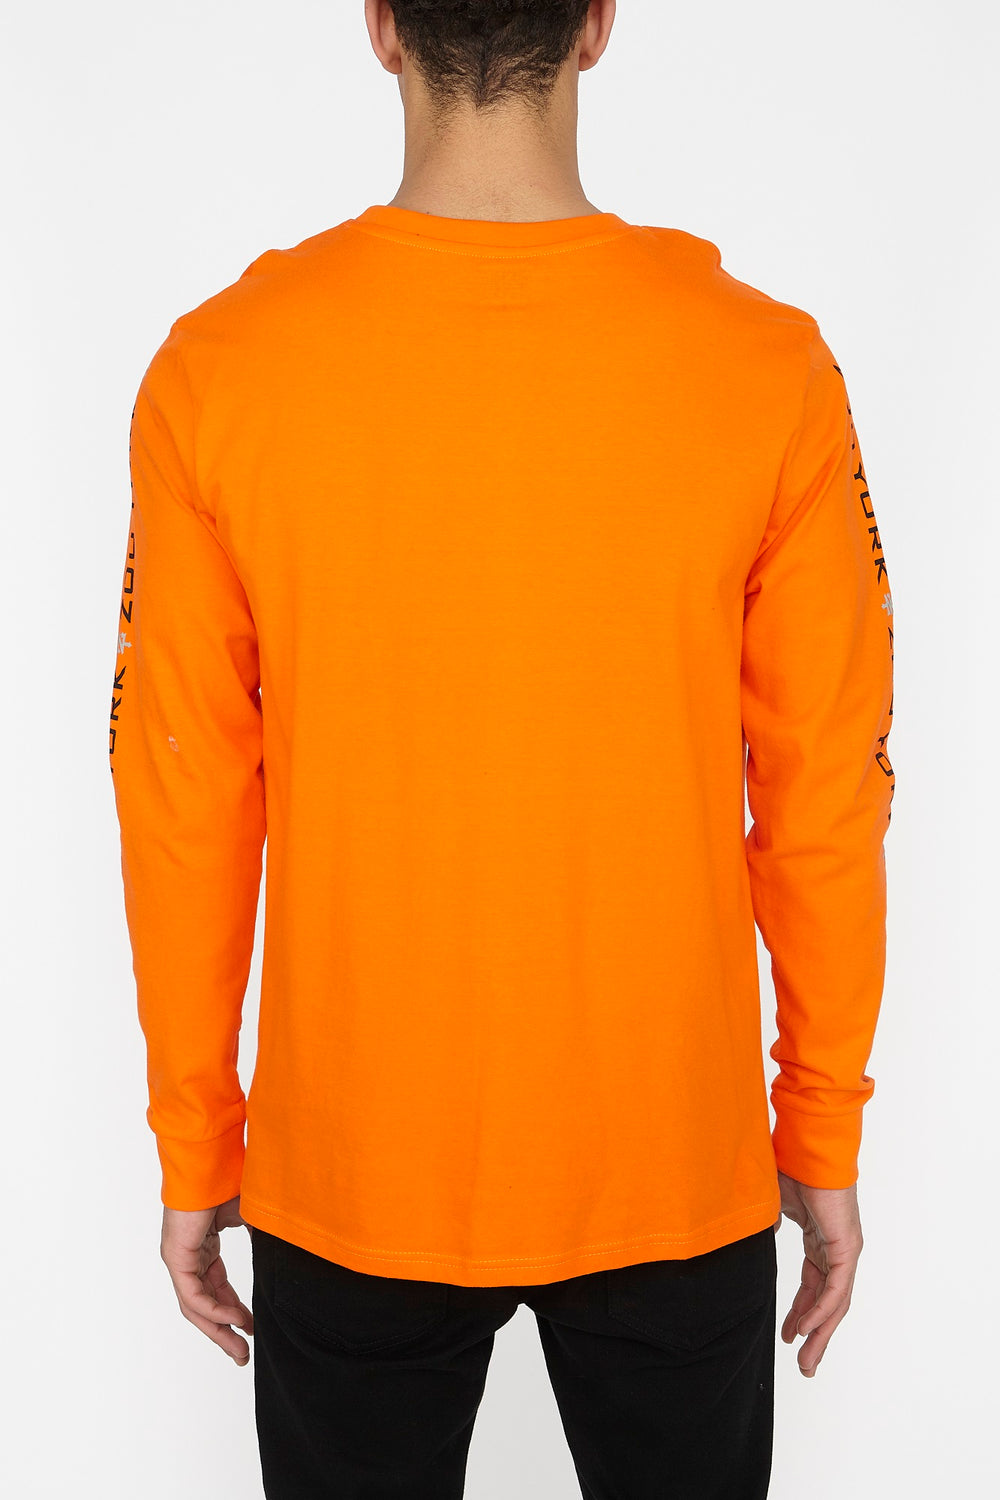 Zoo York Mens Box Logo Long Sleeve Orange